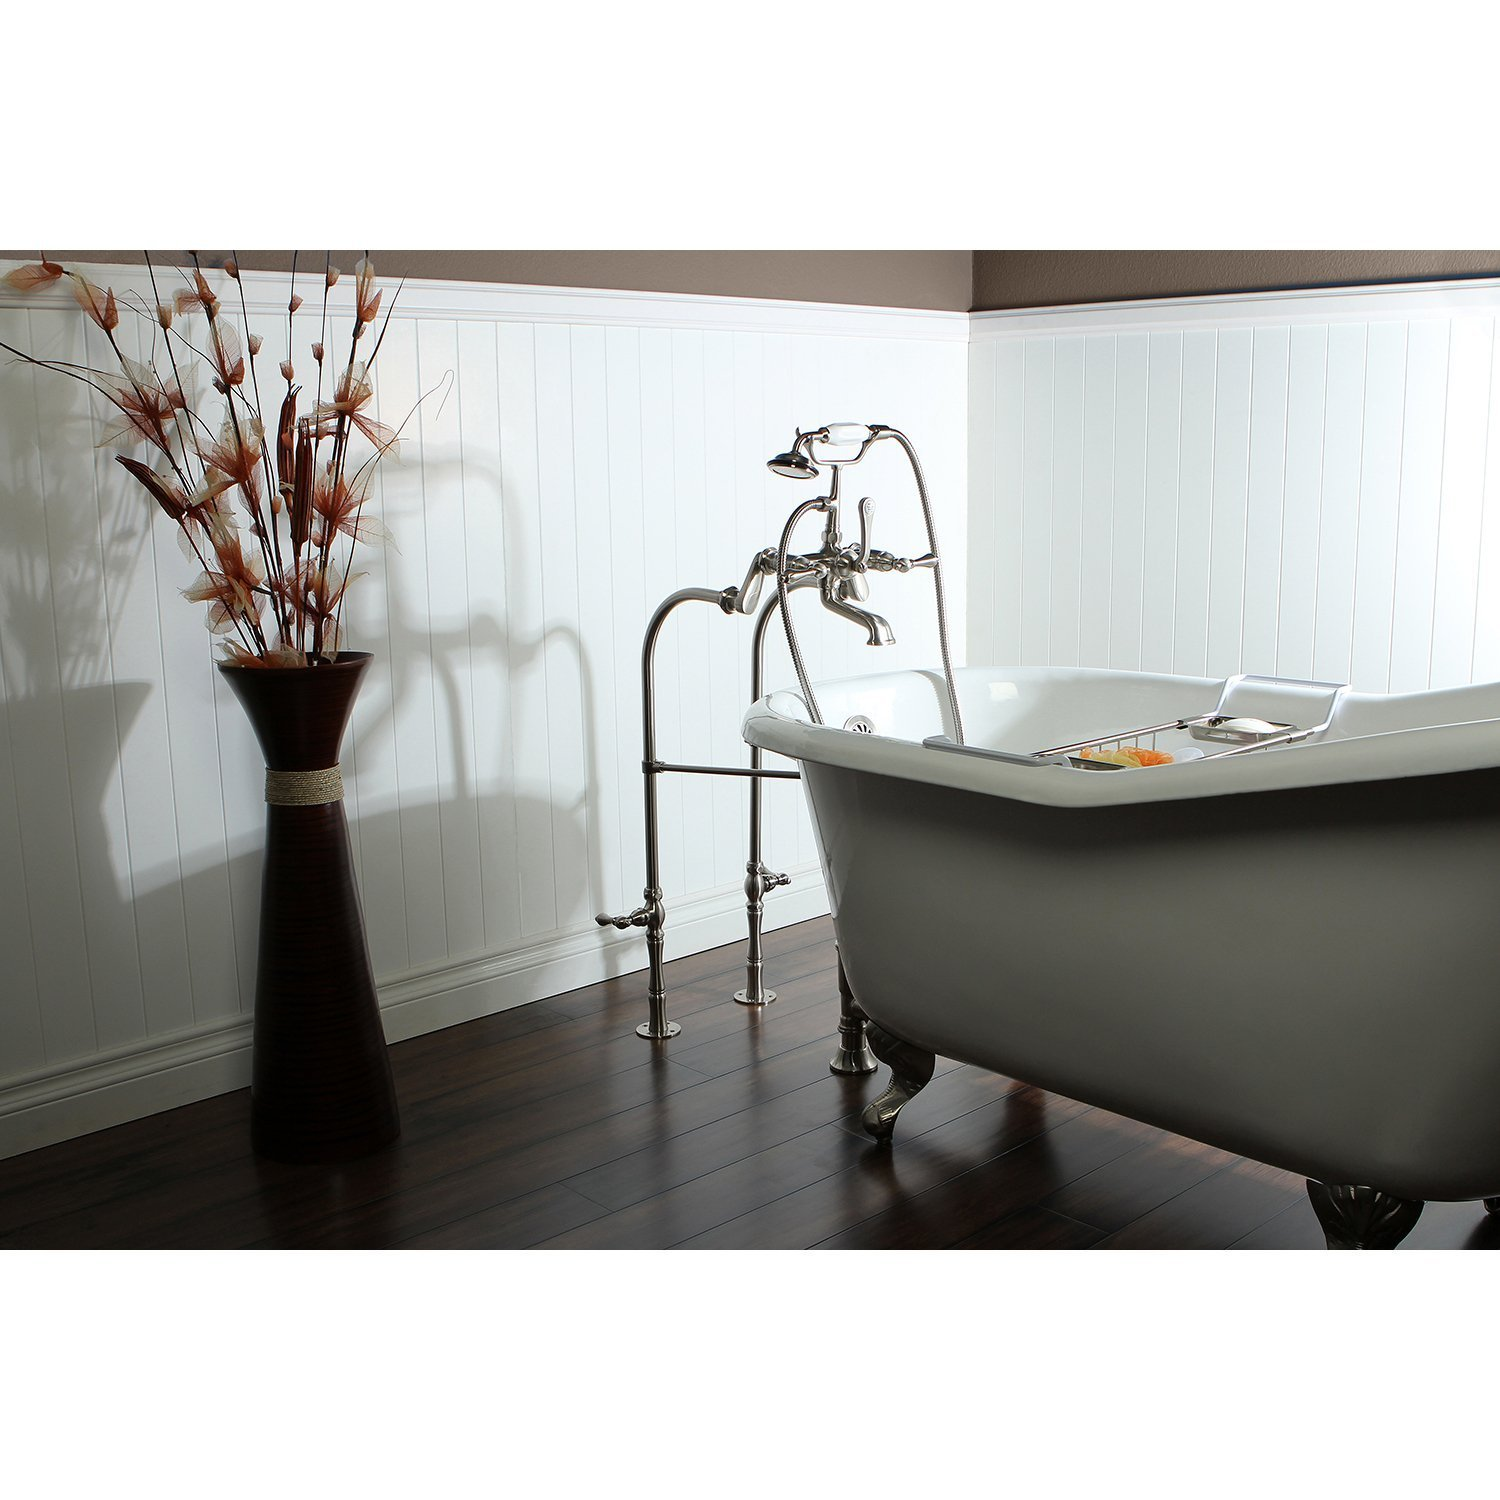 Cheap Floor Mount Tub Faucets, find Floor Mount Tub Faucets deals on ...